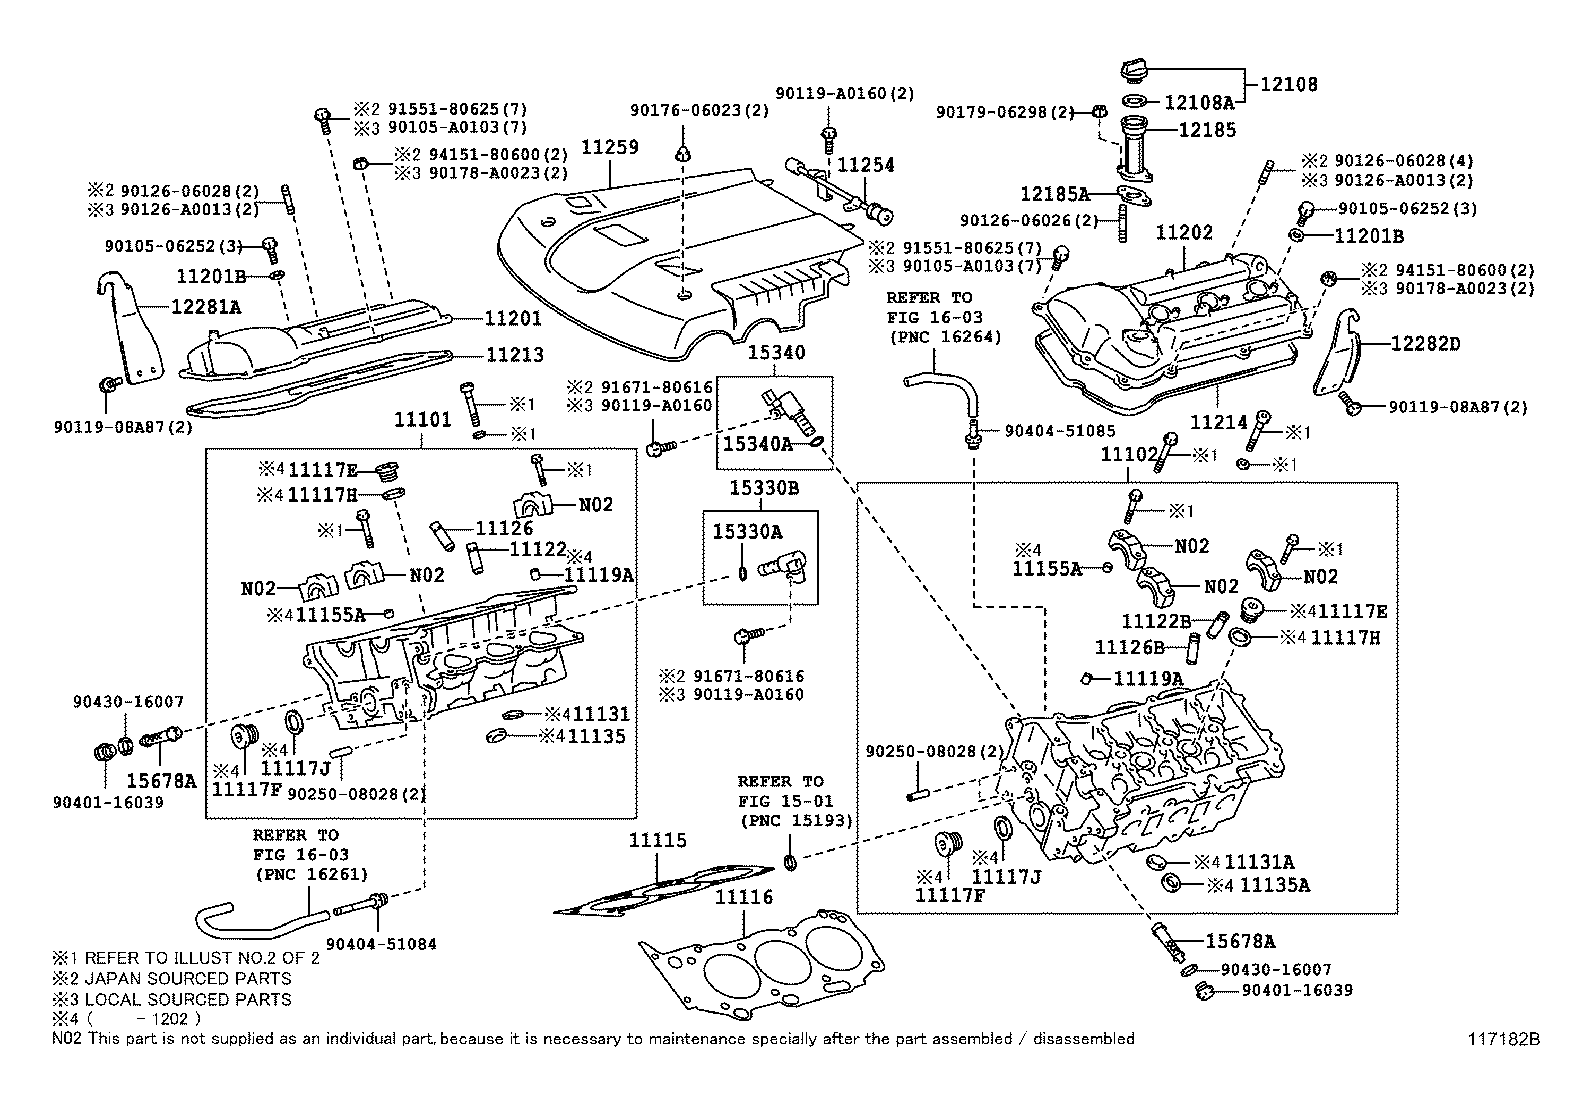 Cylinder Head Illust No 1 Of 20409 1grfe Toyota Tacoma Grn2 1gr Fe Engine Diagram Tacomagrn23trn2 North America